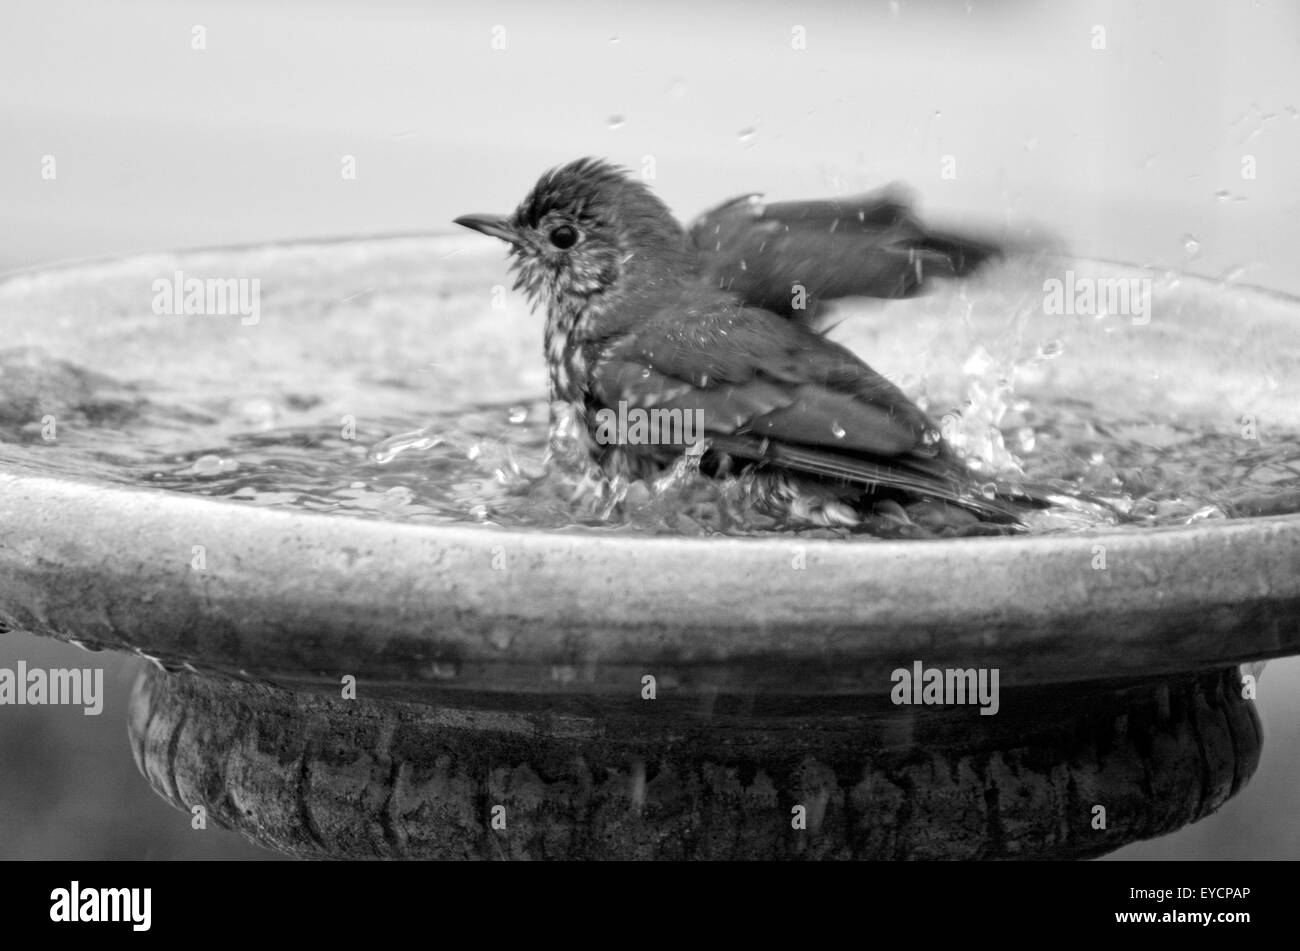 Delicieux Yellowhammer Having A Bird Shower In Home Garden Birdbath. (BW)   Stock  Image